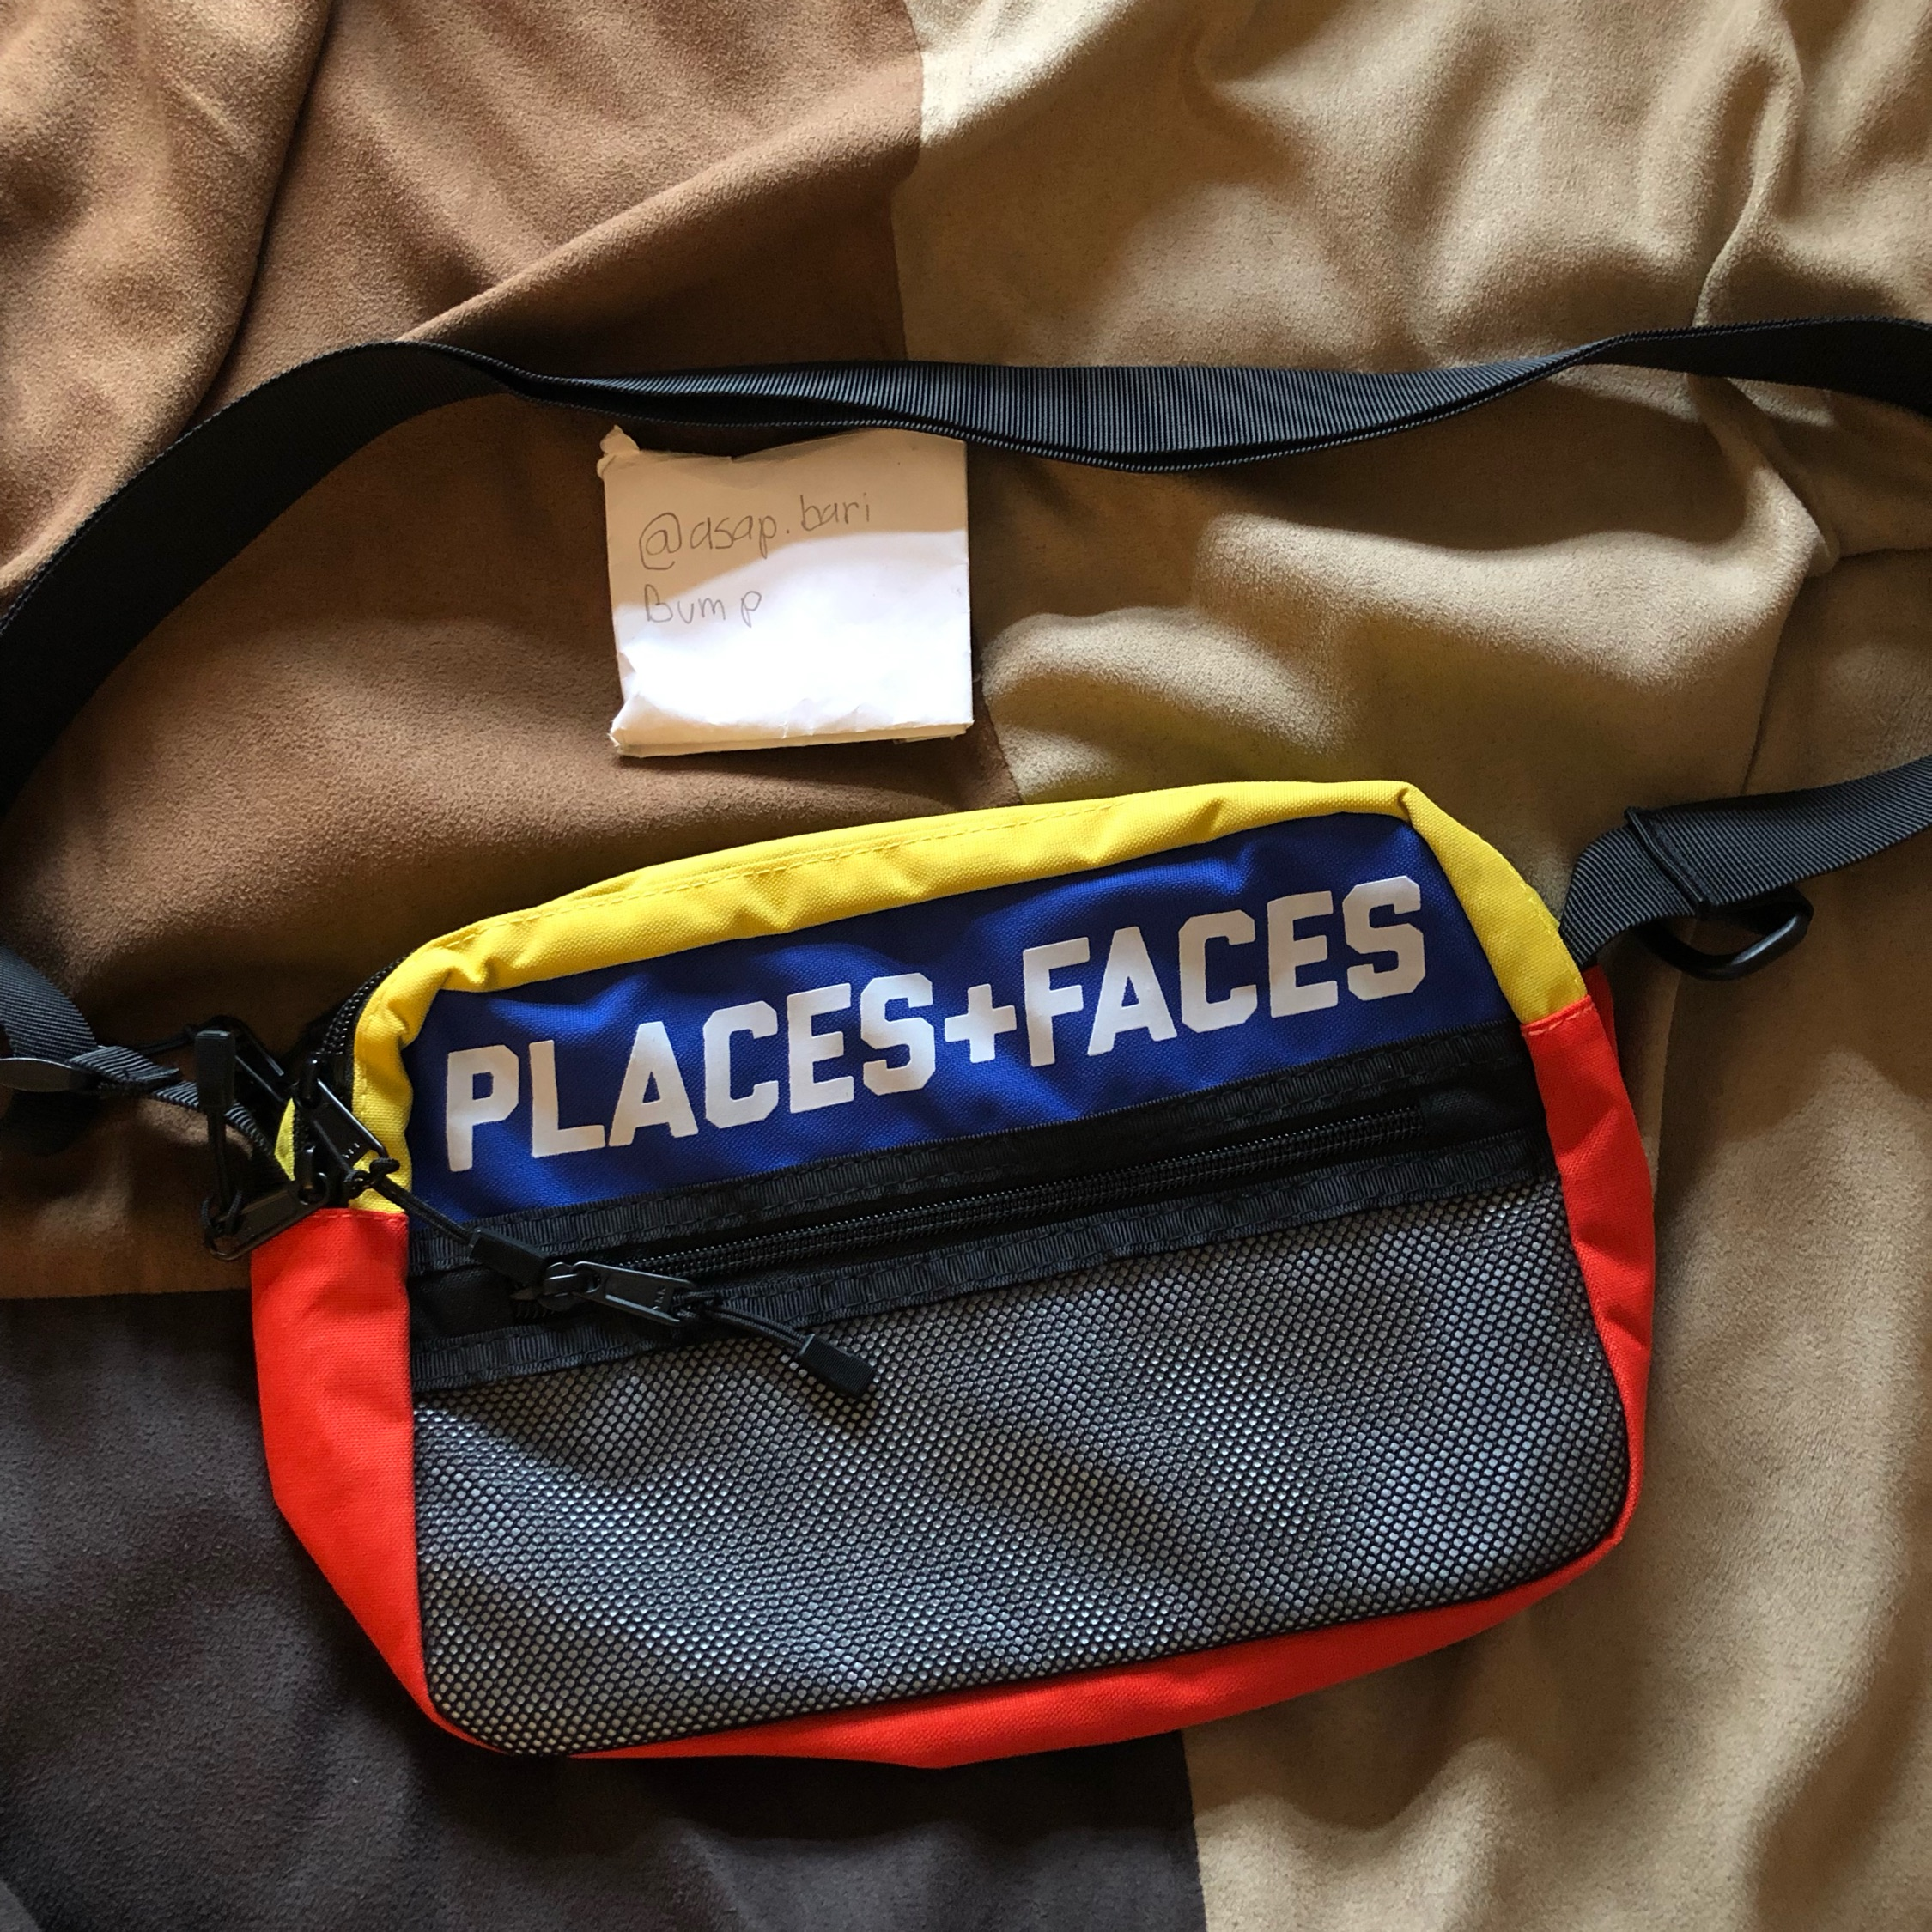 Places + Faces X Hbx Sidebag